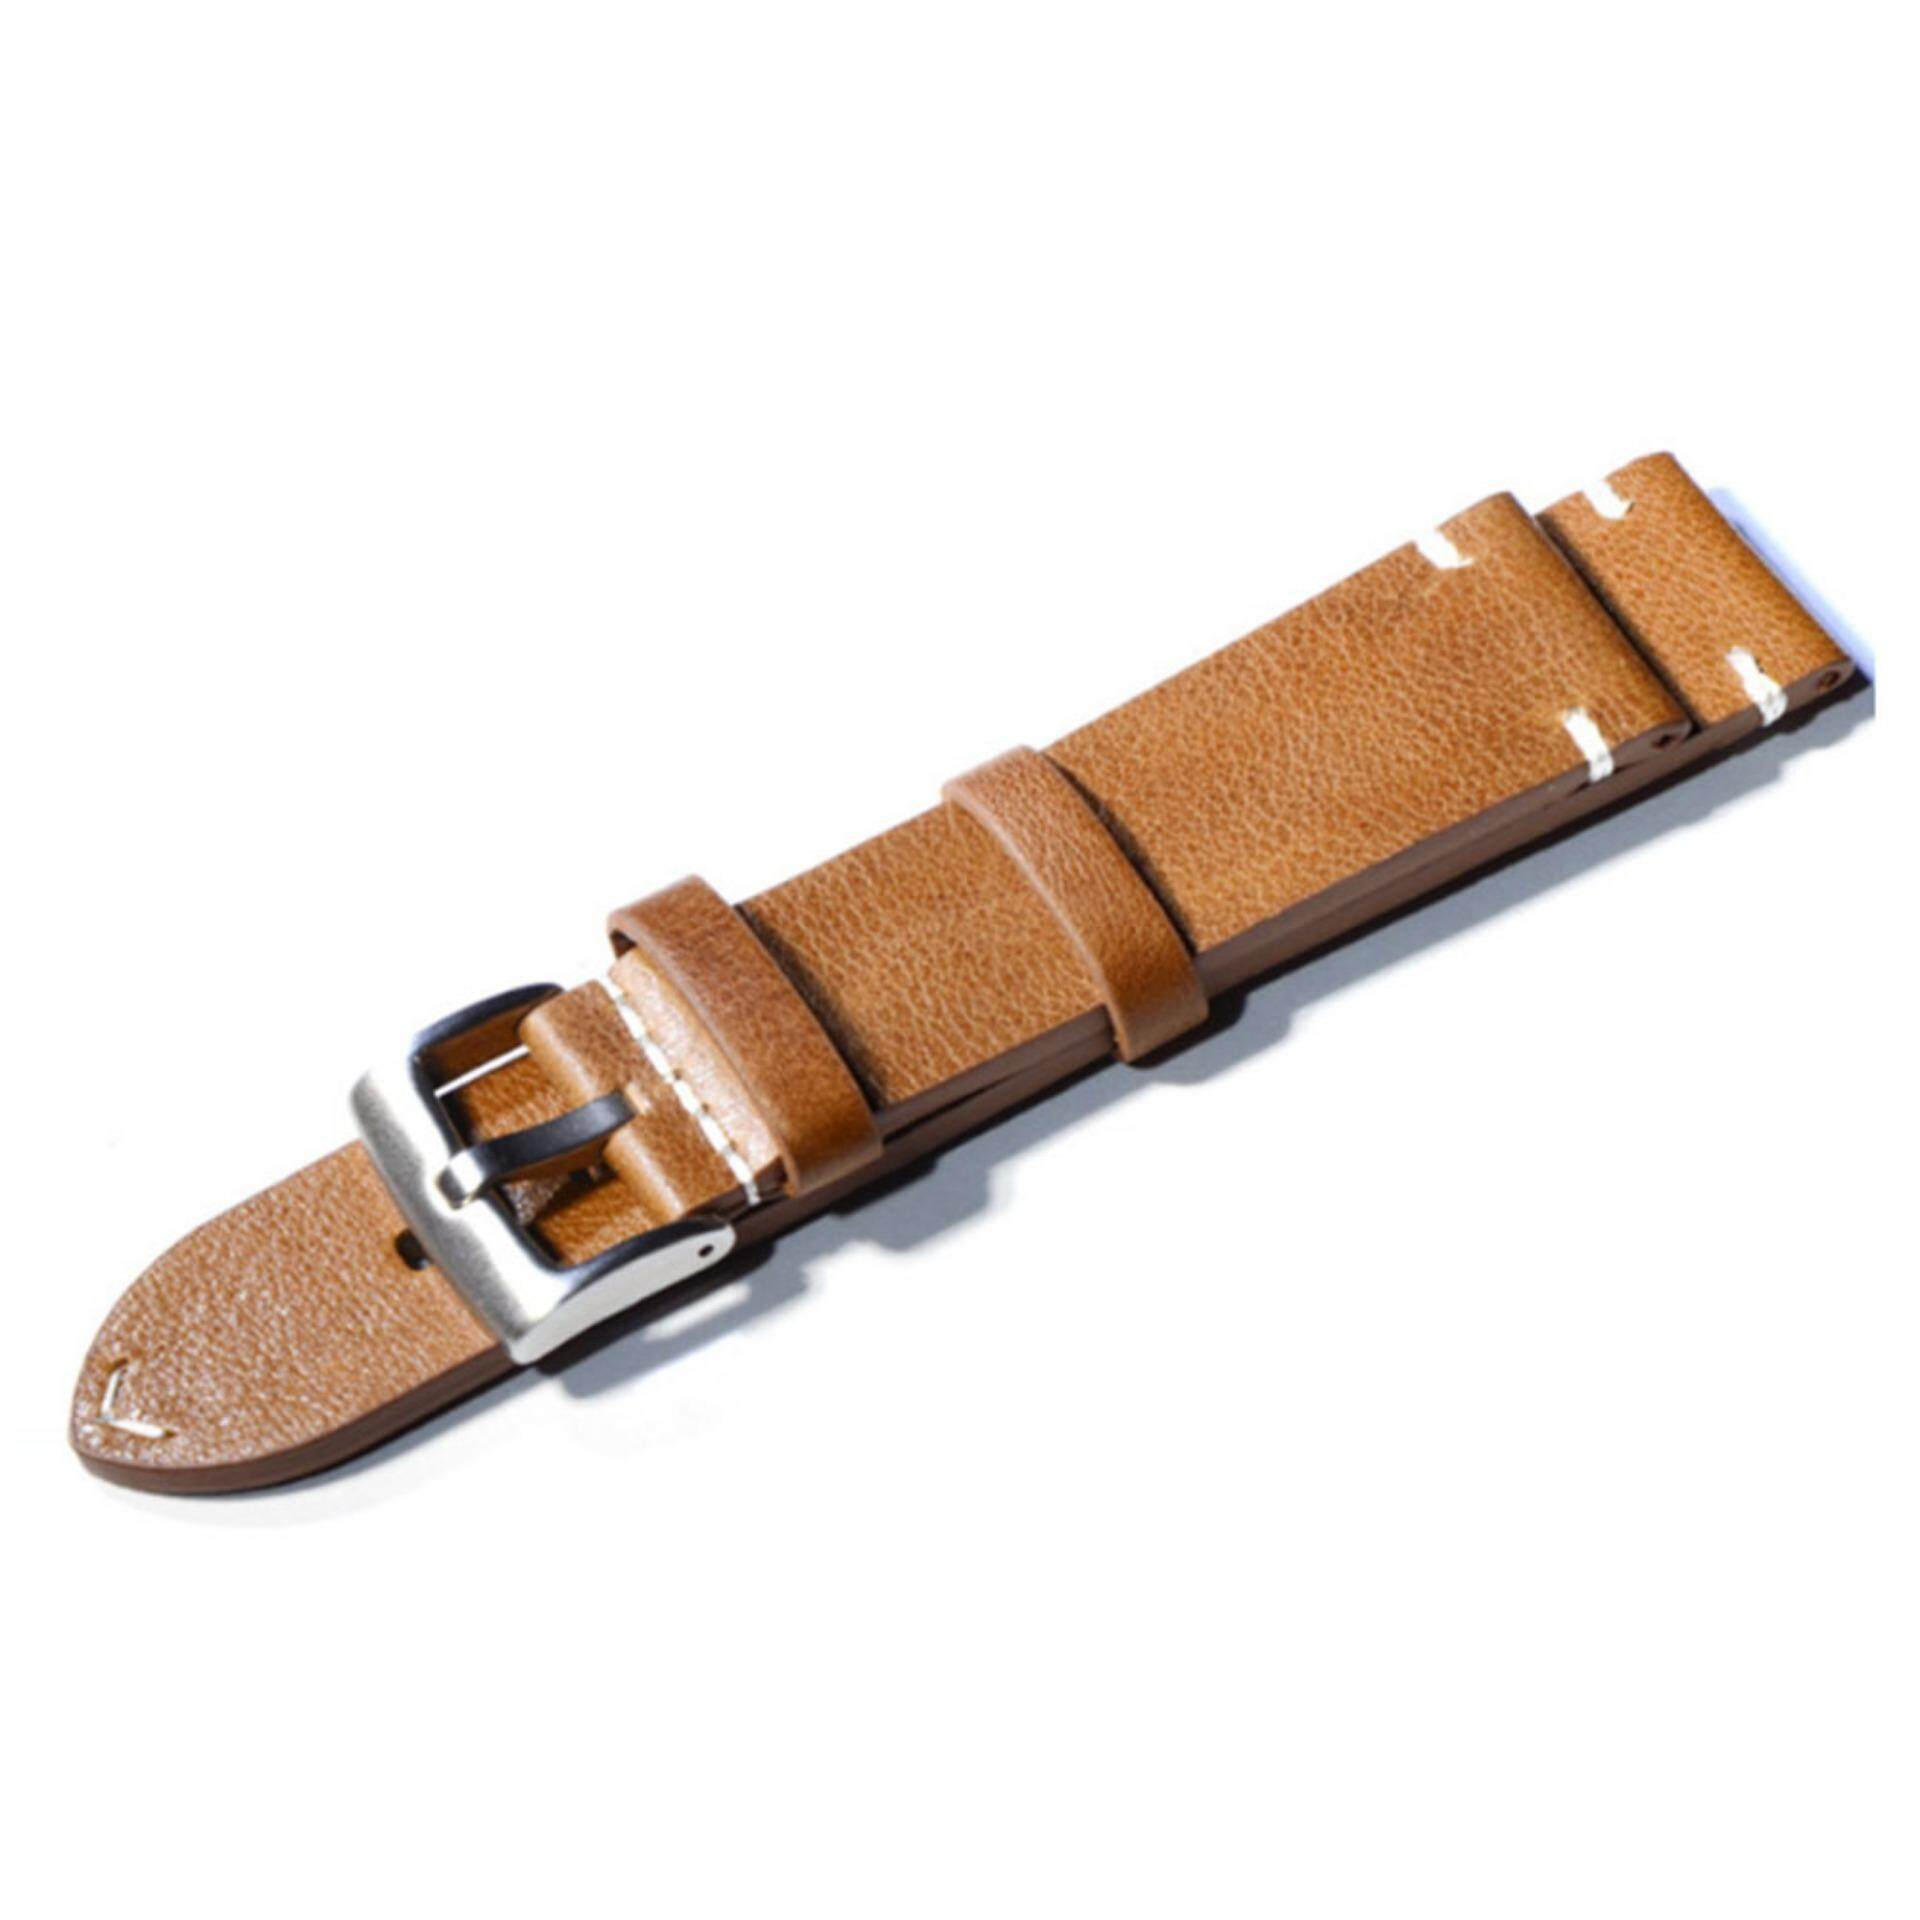 HUA SI HAI-  20mm Watch Bands Wristwatch Straps Wrist Watch Band Strap Belt Nubuck Genuine Leather Replacement Bracelet Watch Band Strap with Stainless Steel Buckle Brown Malaysia